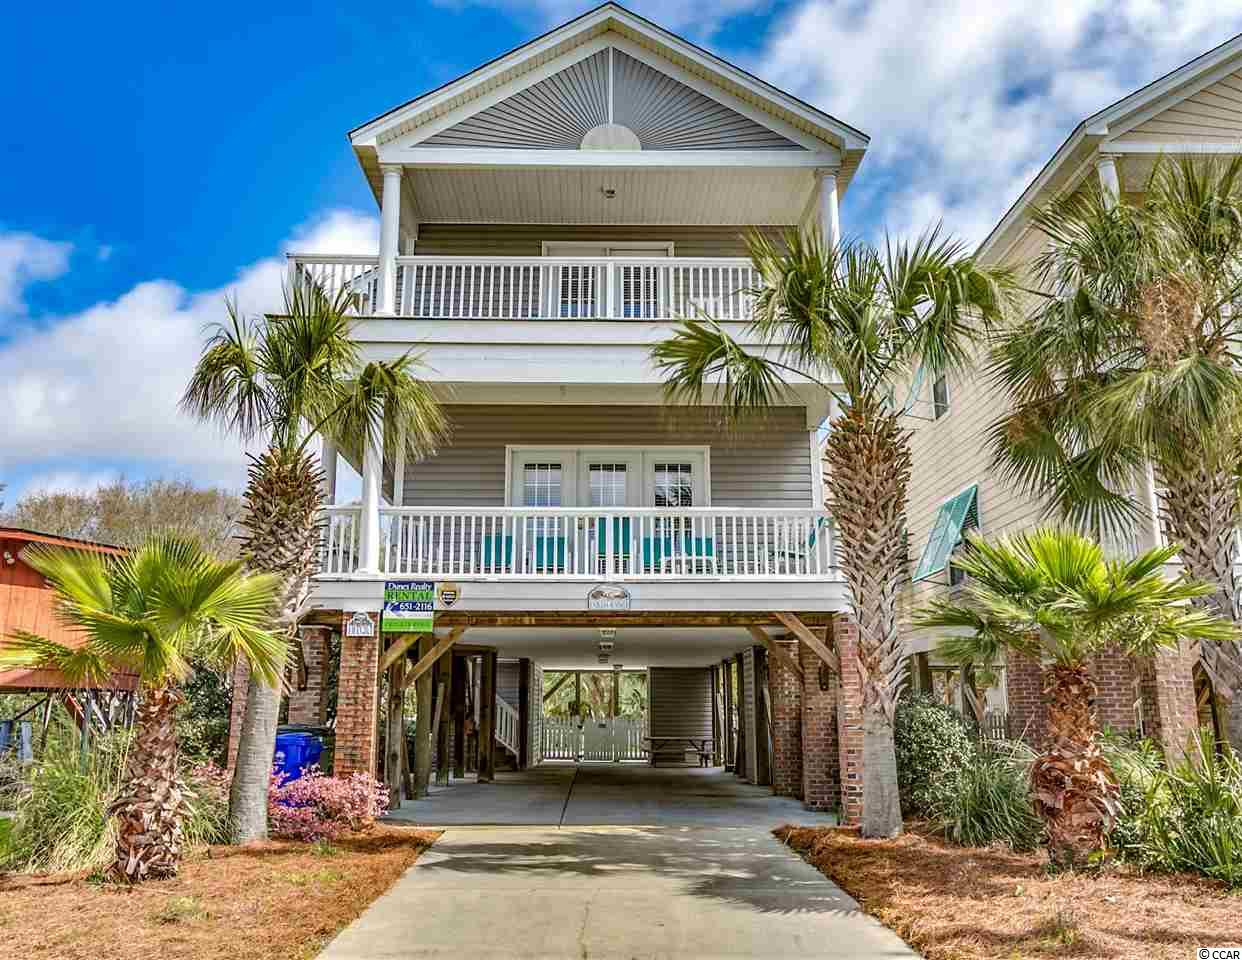 Closing scheduled for 9/16/2019. 110A 12th Avenue South known as Endless Summer is a fully furnished, five bedroom, five bathroom, 2612 heated square foot, single family raised beach house located 300 feet to the beach in the Town of Surfside Beach. Situated on an extra wide and deep R3 (zoned for vacation rentals) lot this two-story home has double front covered porches, ground level storage with room for a golf cart, parking for five cars, and low maintenance landscaping with an irrigation system. The fenced in backyard features a private walk-in pool, large patio, and plenty of flexible space to make this yard your oasis. The home, constructed in 2005, was built with an elevator shaft and pit (currently used as owner storage) ready for a residential elevator to be installed. The open living areas with tile and new LVT (Luxury Vinyl Tile) floors provide abundant space for large gatherings.  There are new granite kitchen countertops. The main level has direct access to the lower level covered porch off the living room, and there is a large bedroom and bathroom at the rear of the home. Upstairs there are four additional bedrooms, all with ensuite bathrooms, the laundry room and extra owner storage. The main master suite is located on the front of the home, has direct access to the second-floor covered porch, a bathroom with double sinks, and a garden tub/shower combination. The HVAC system has an existing warranty that expires in November 2022. The house has had over a decade of consistent strong rental history. The new homeowner will have the ability to offset their carrying costs utilizing the current homeowner's book of business managed by a local vacation rental management company. Why continue to rent when you can own a piece of one of the most beautiful stretches of the Grand​​‌​​​​‌​​‌‌​​​‌​​‌‌​​​‌​‌​​​‌‌​ Strand?